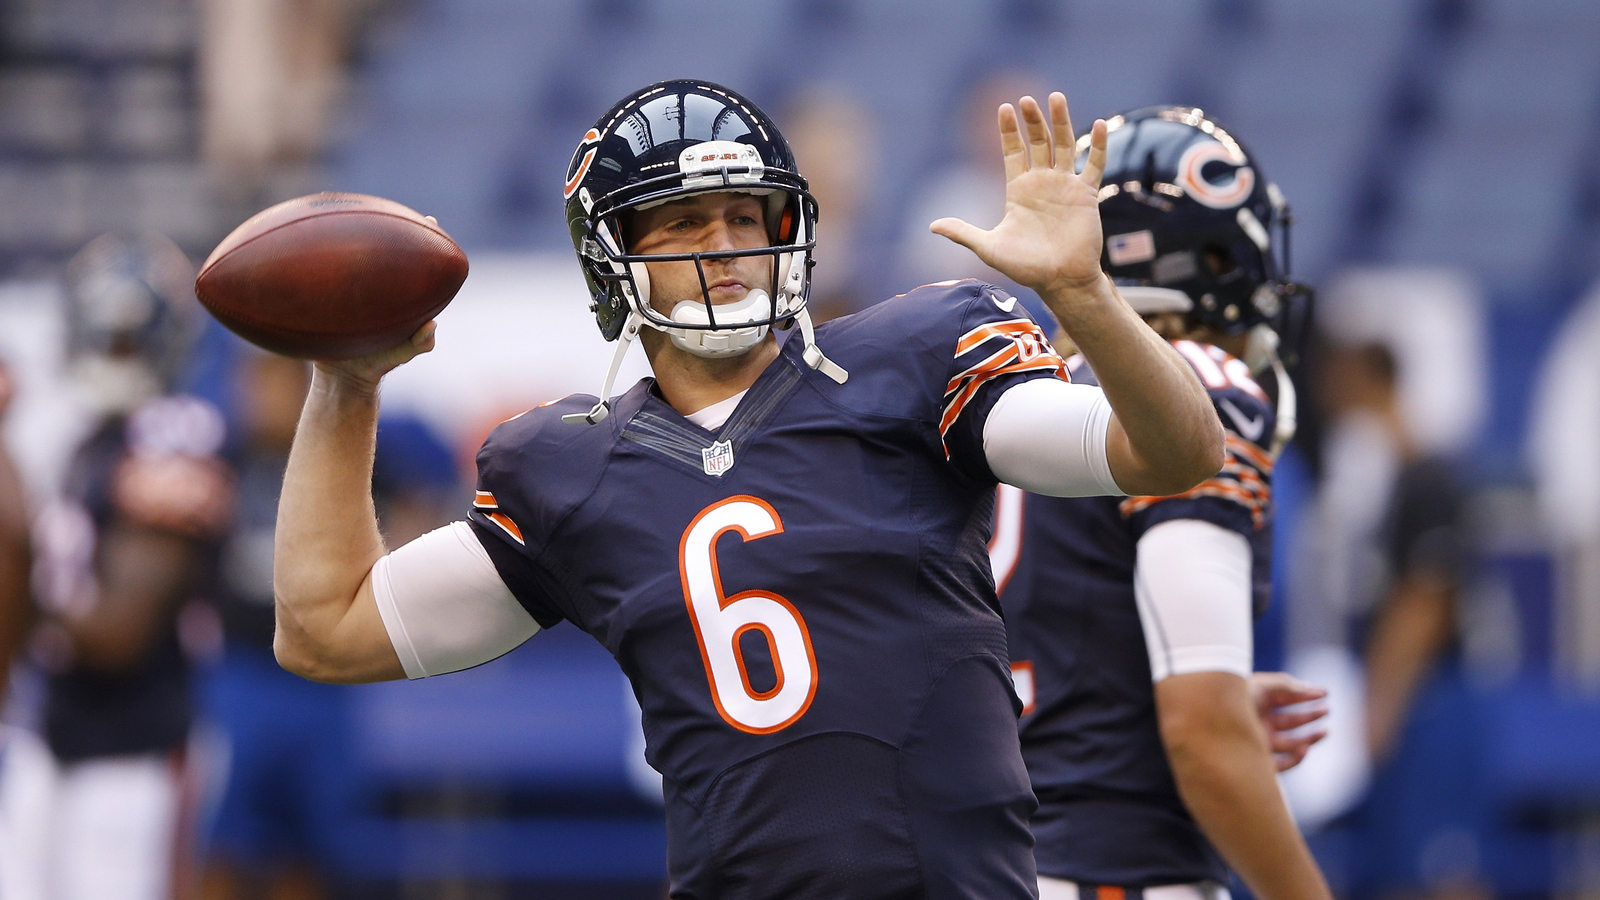 Cutler makes up for INT as Bears beat Raiders 22-20